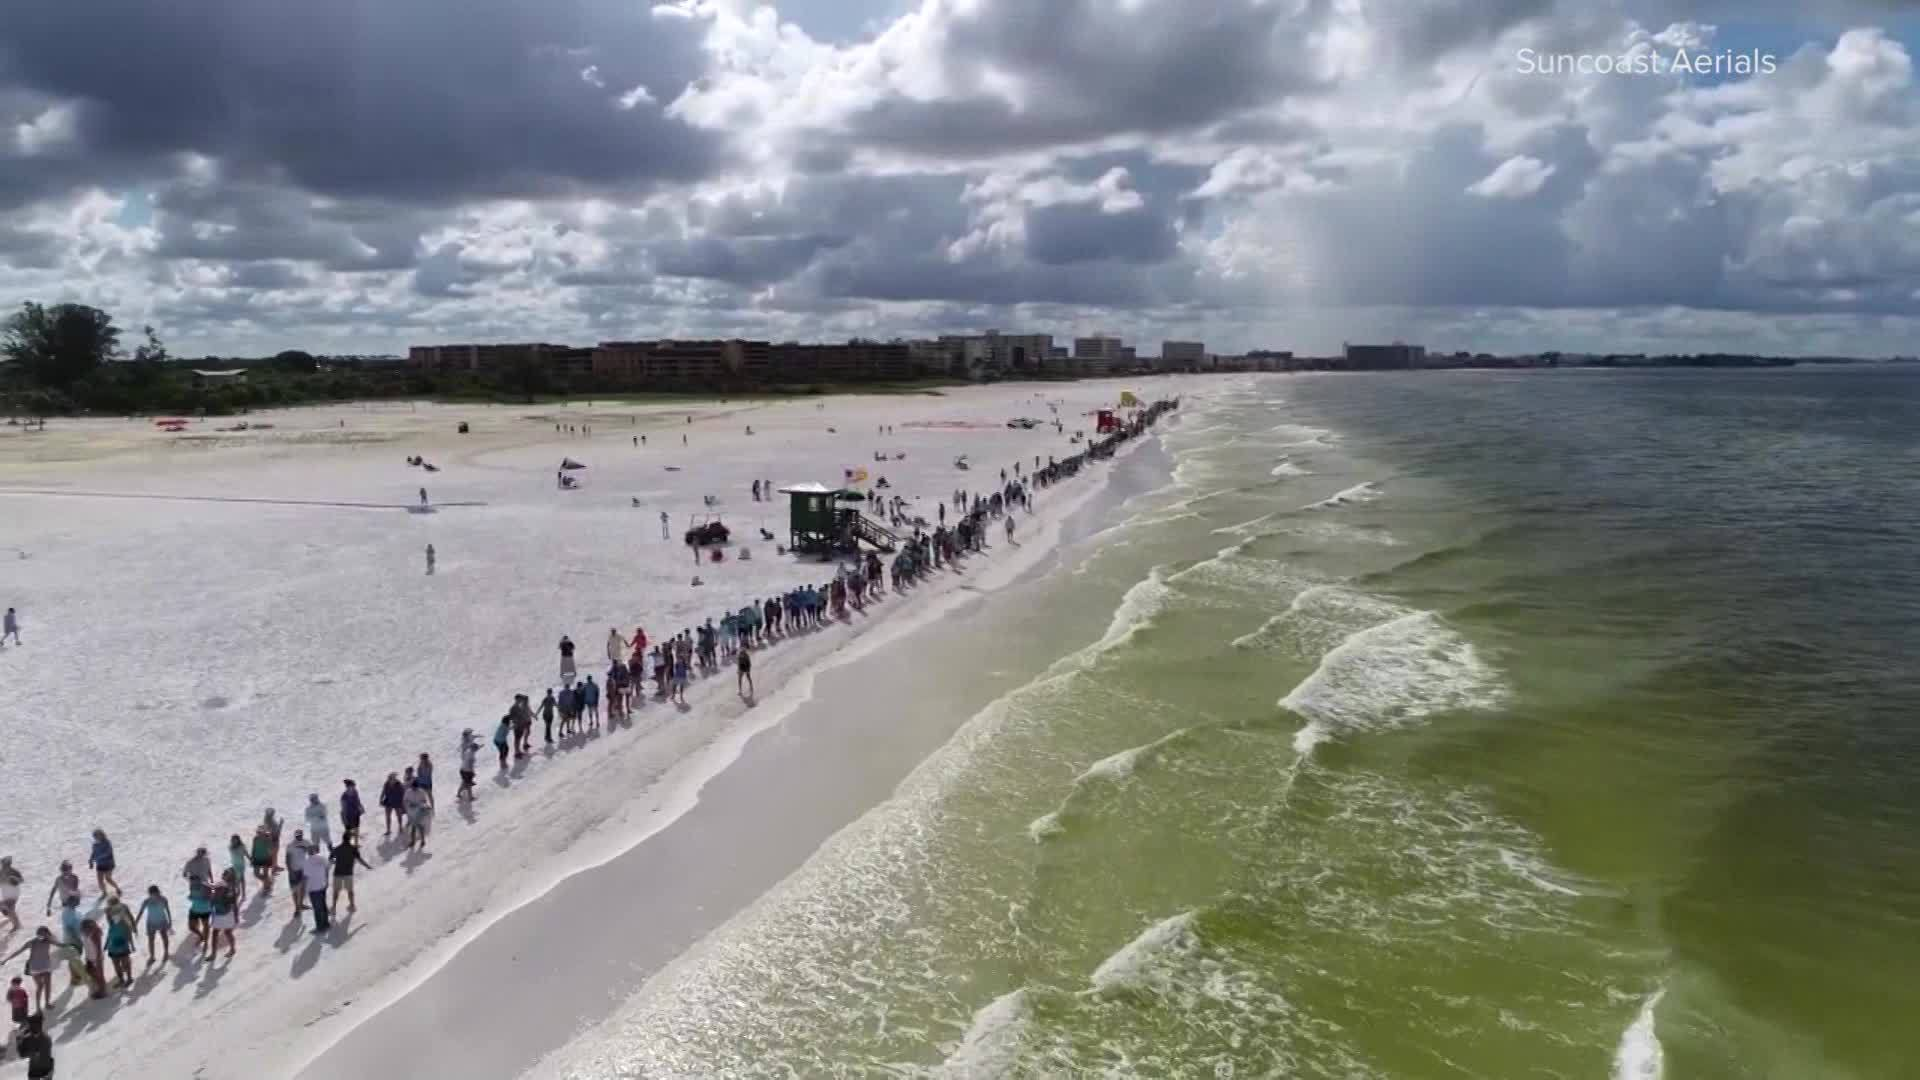 'Hands Along the Water' events were held along the coast Sunday morning